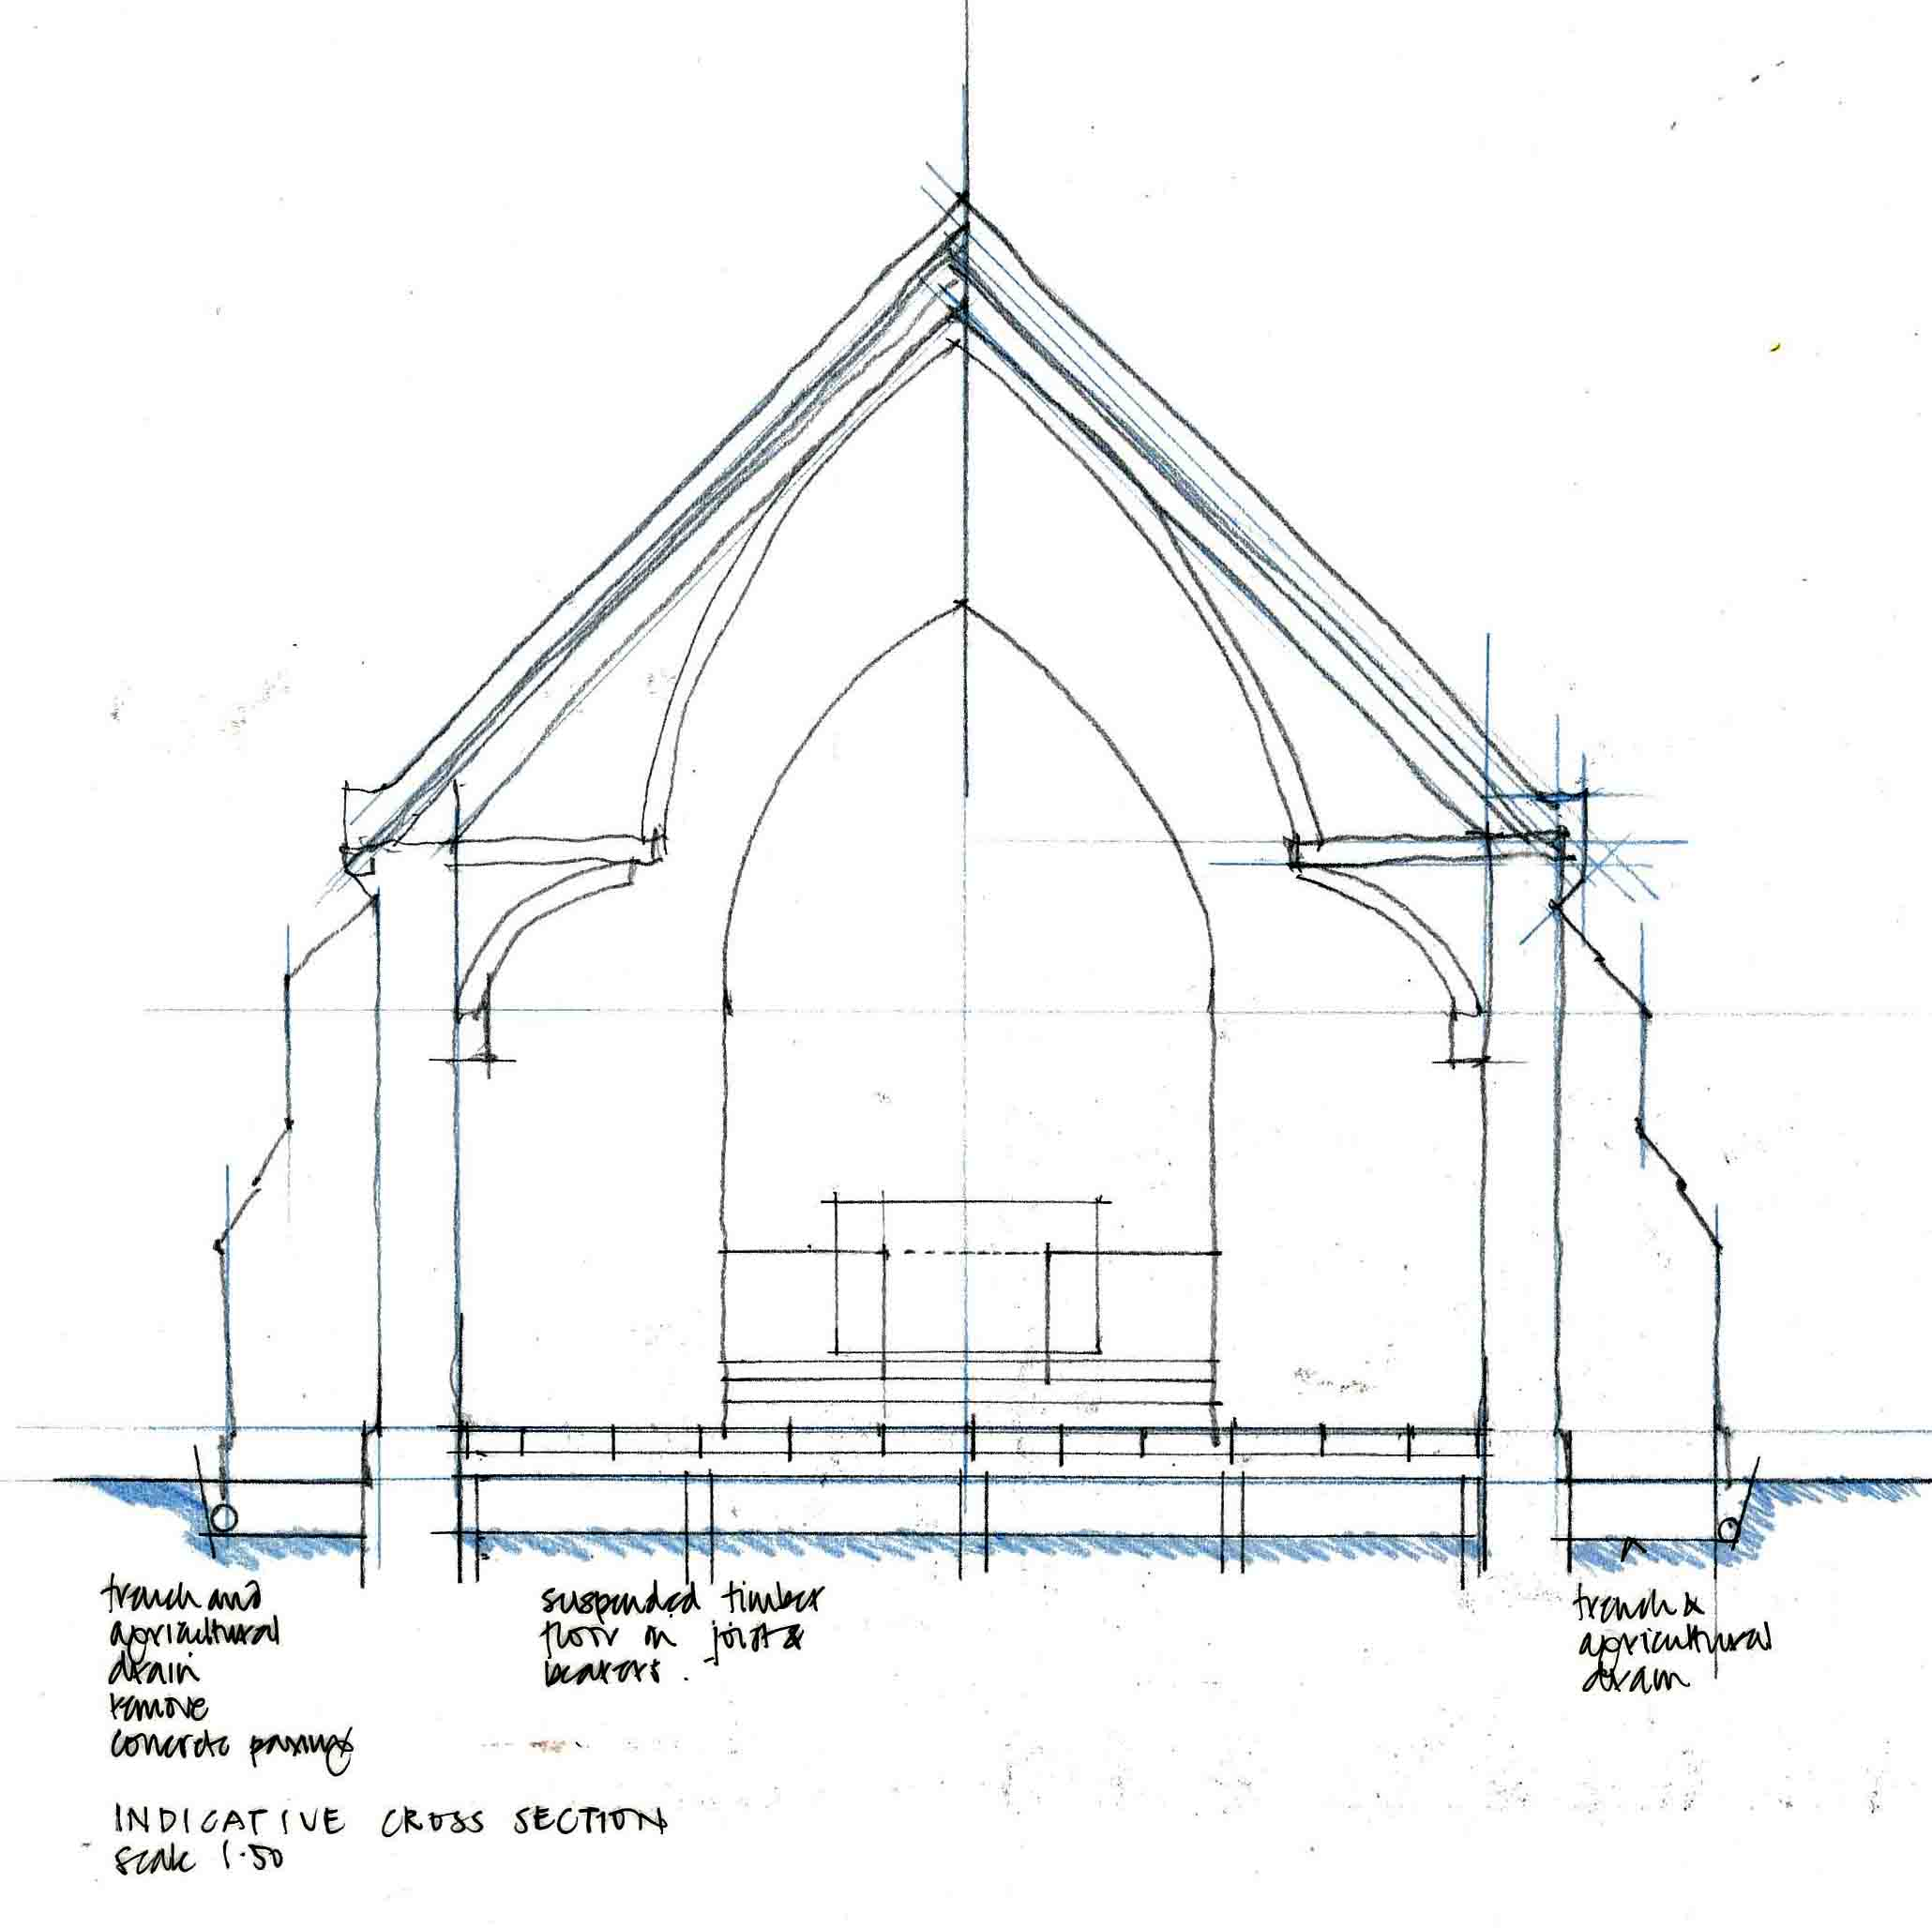 Section of the church showing the proposed new floor